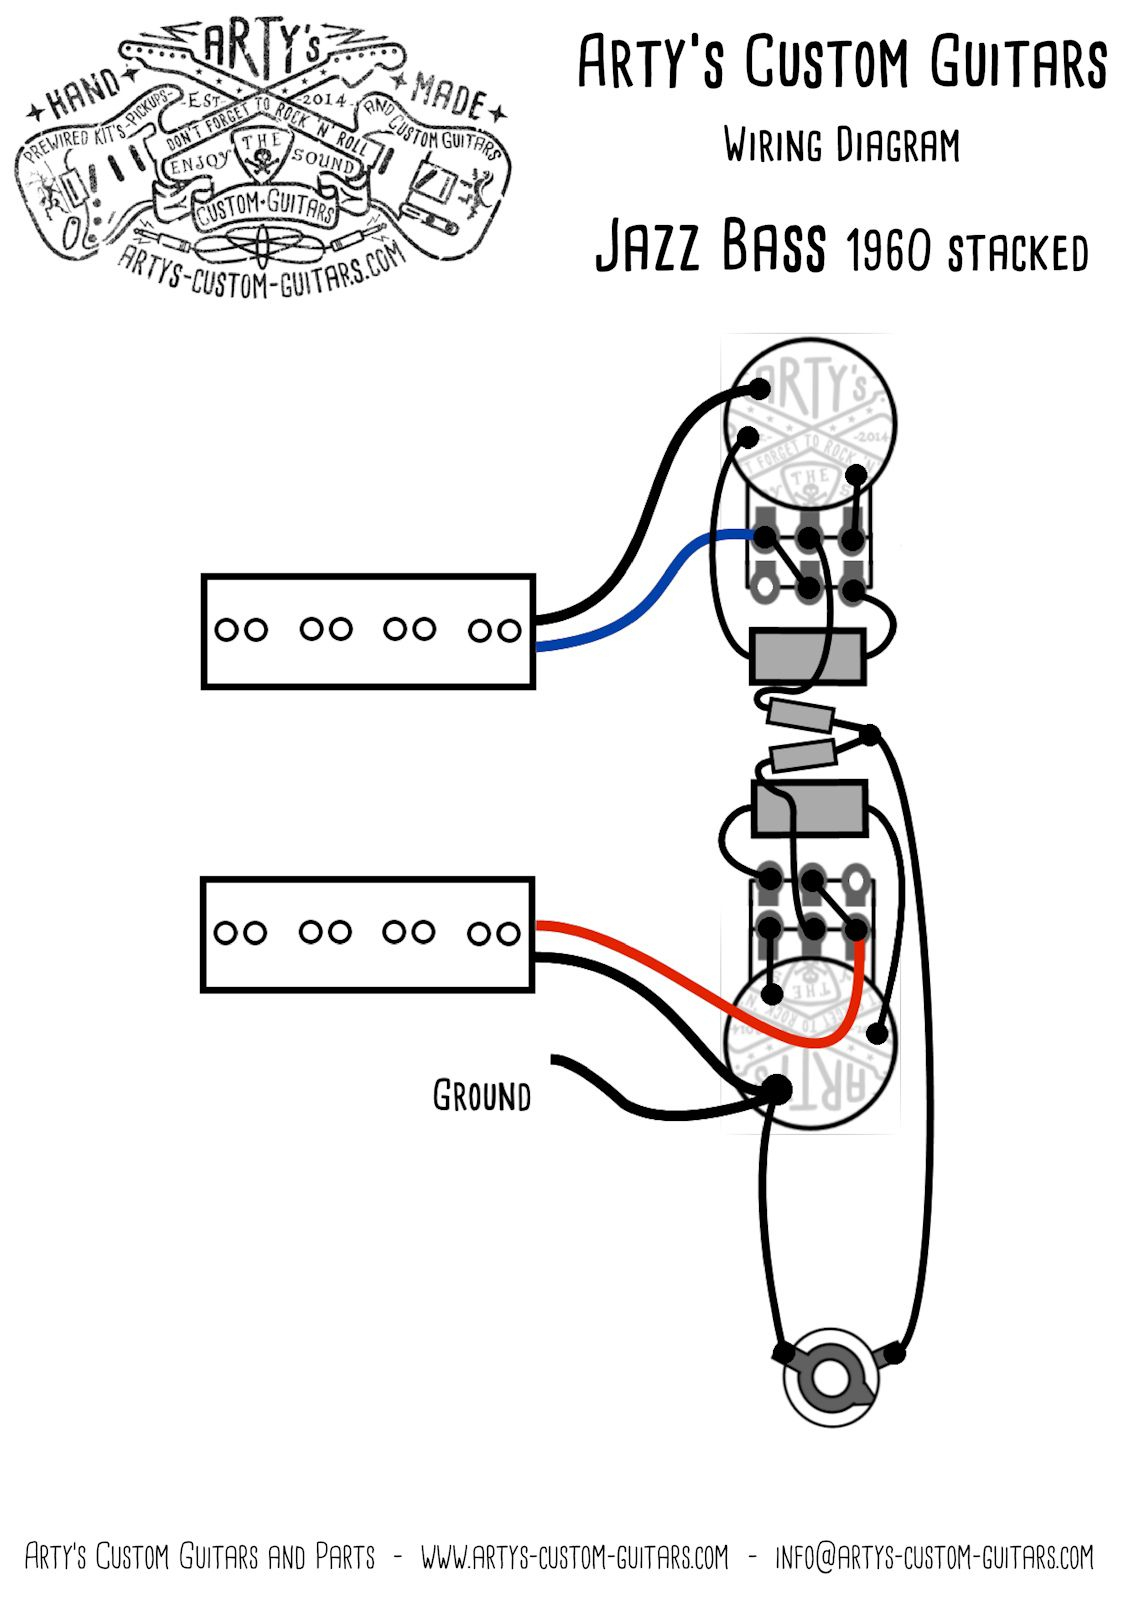 Arty's Custom Guitars Vintage Pre-Wired Prewired Kit Wiring Assembly - Bass Wiring Diagram